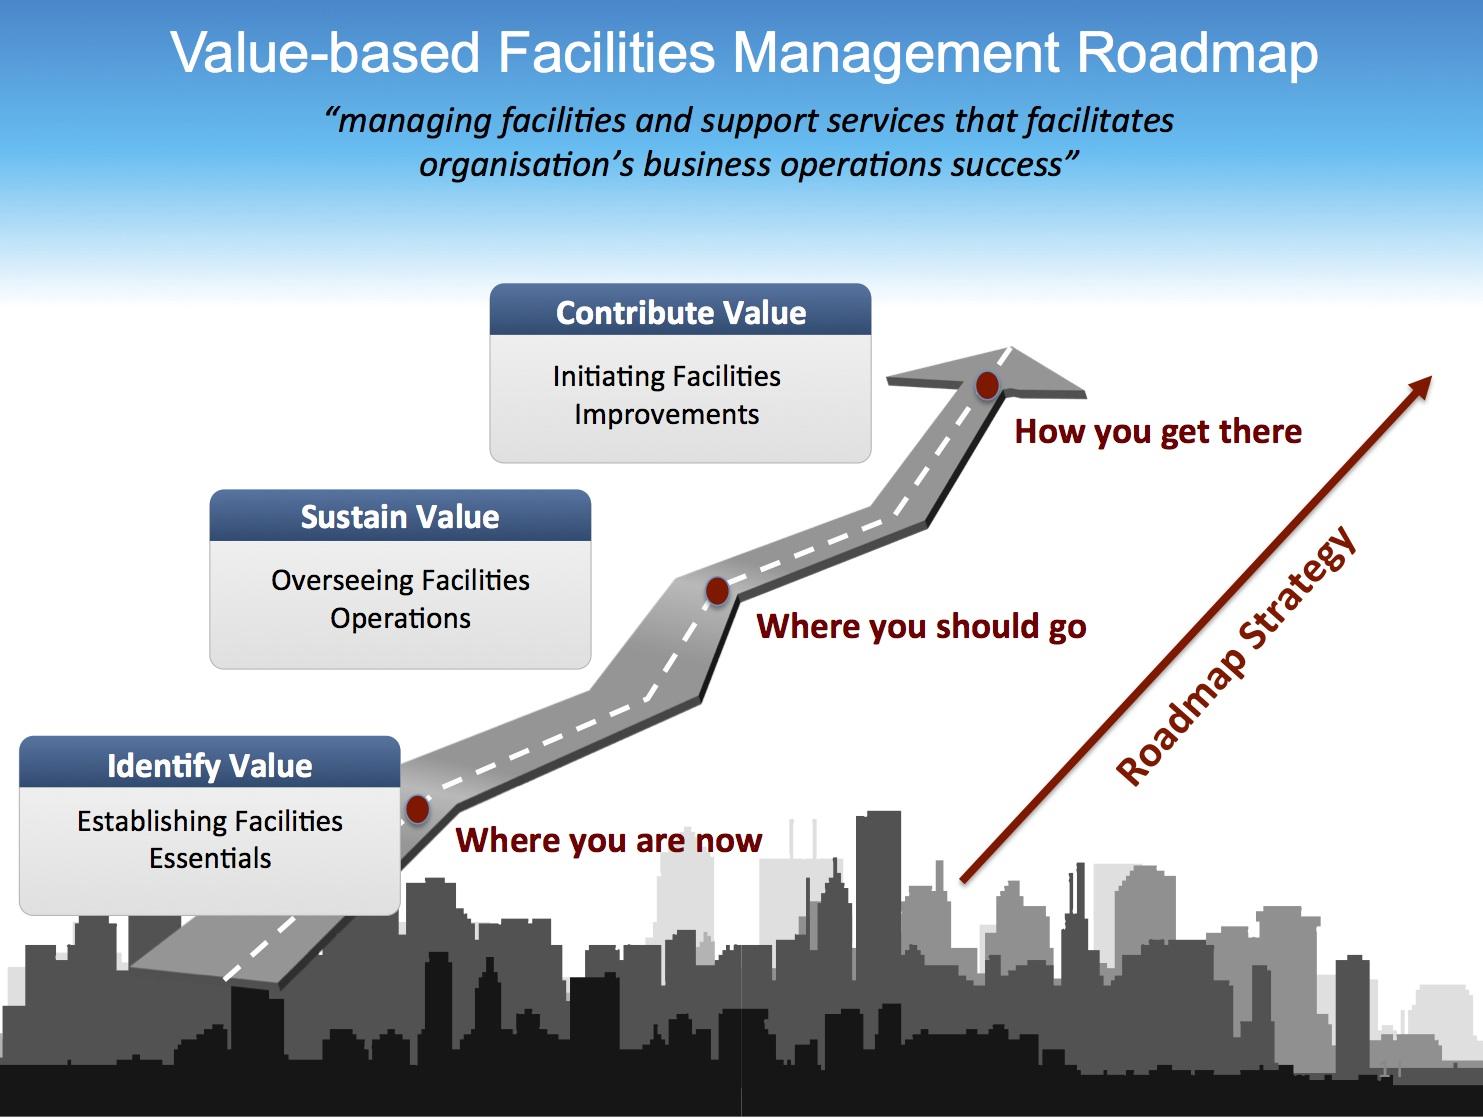 fms associates asia pte ltd vbfm strategy roadmap fms associates